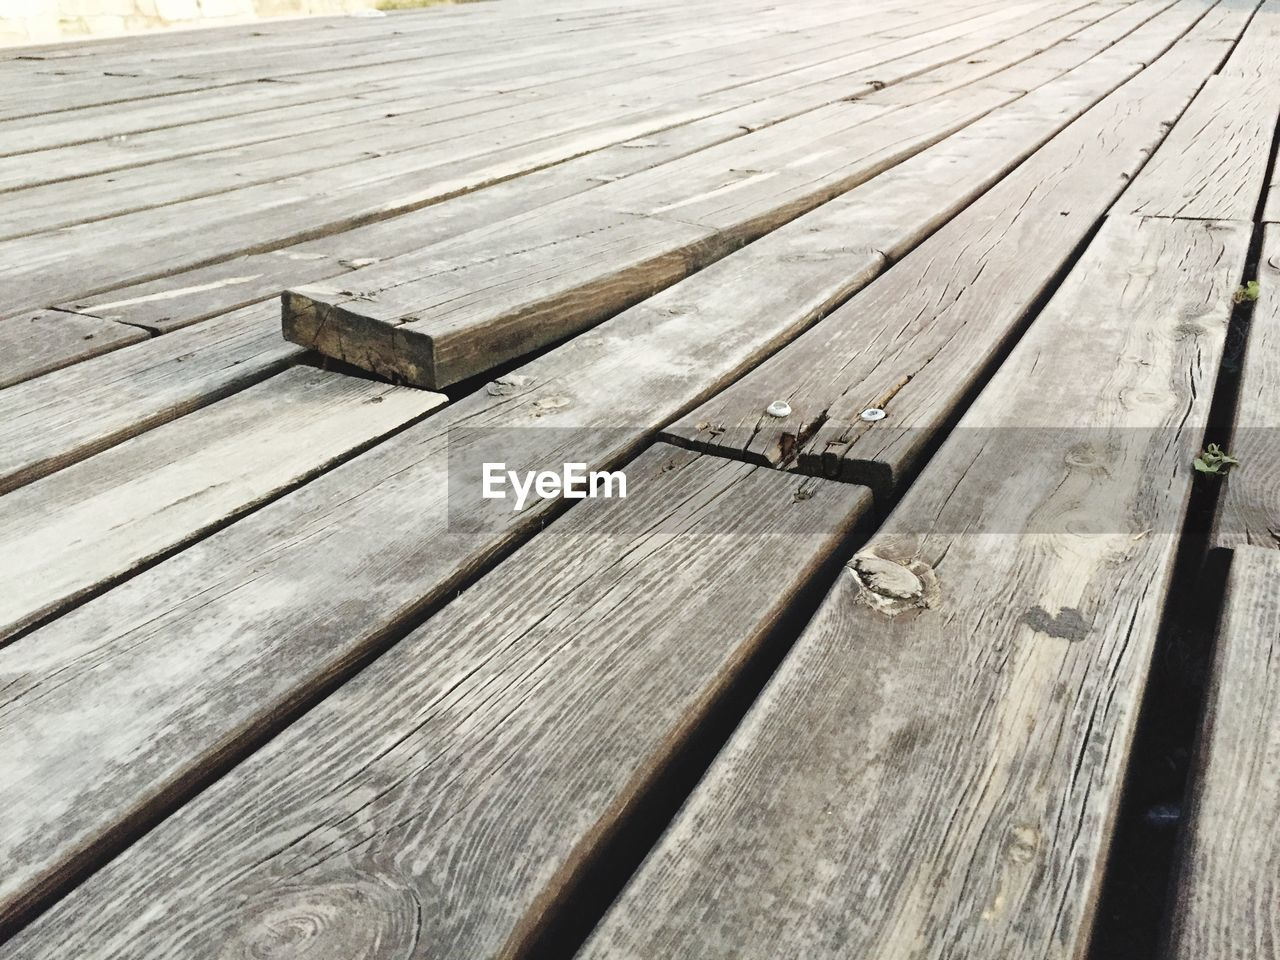 wood - material, high angle view, no people, day, plank, metal, close-up, wood, textured, pattern, nail, work tool, tool, sunlight, bench, outdoors, carpentry, hammer, boardwalk, hand tool, wood grain